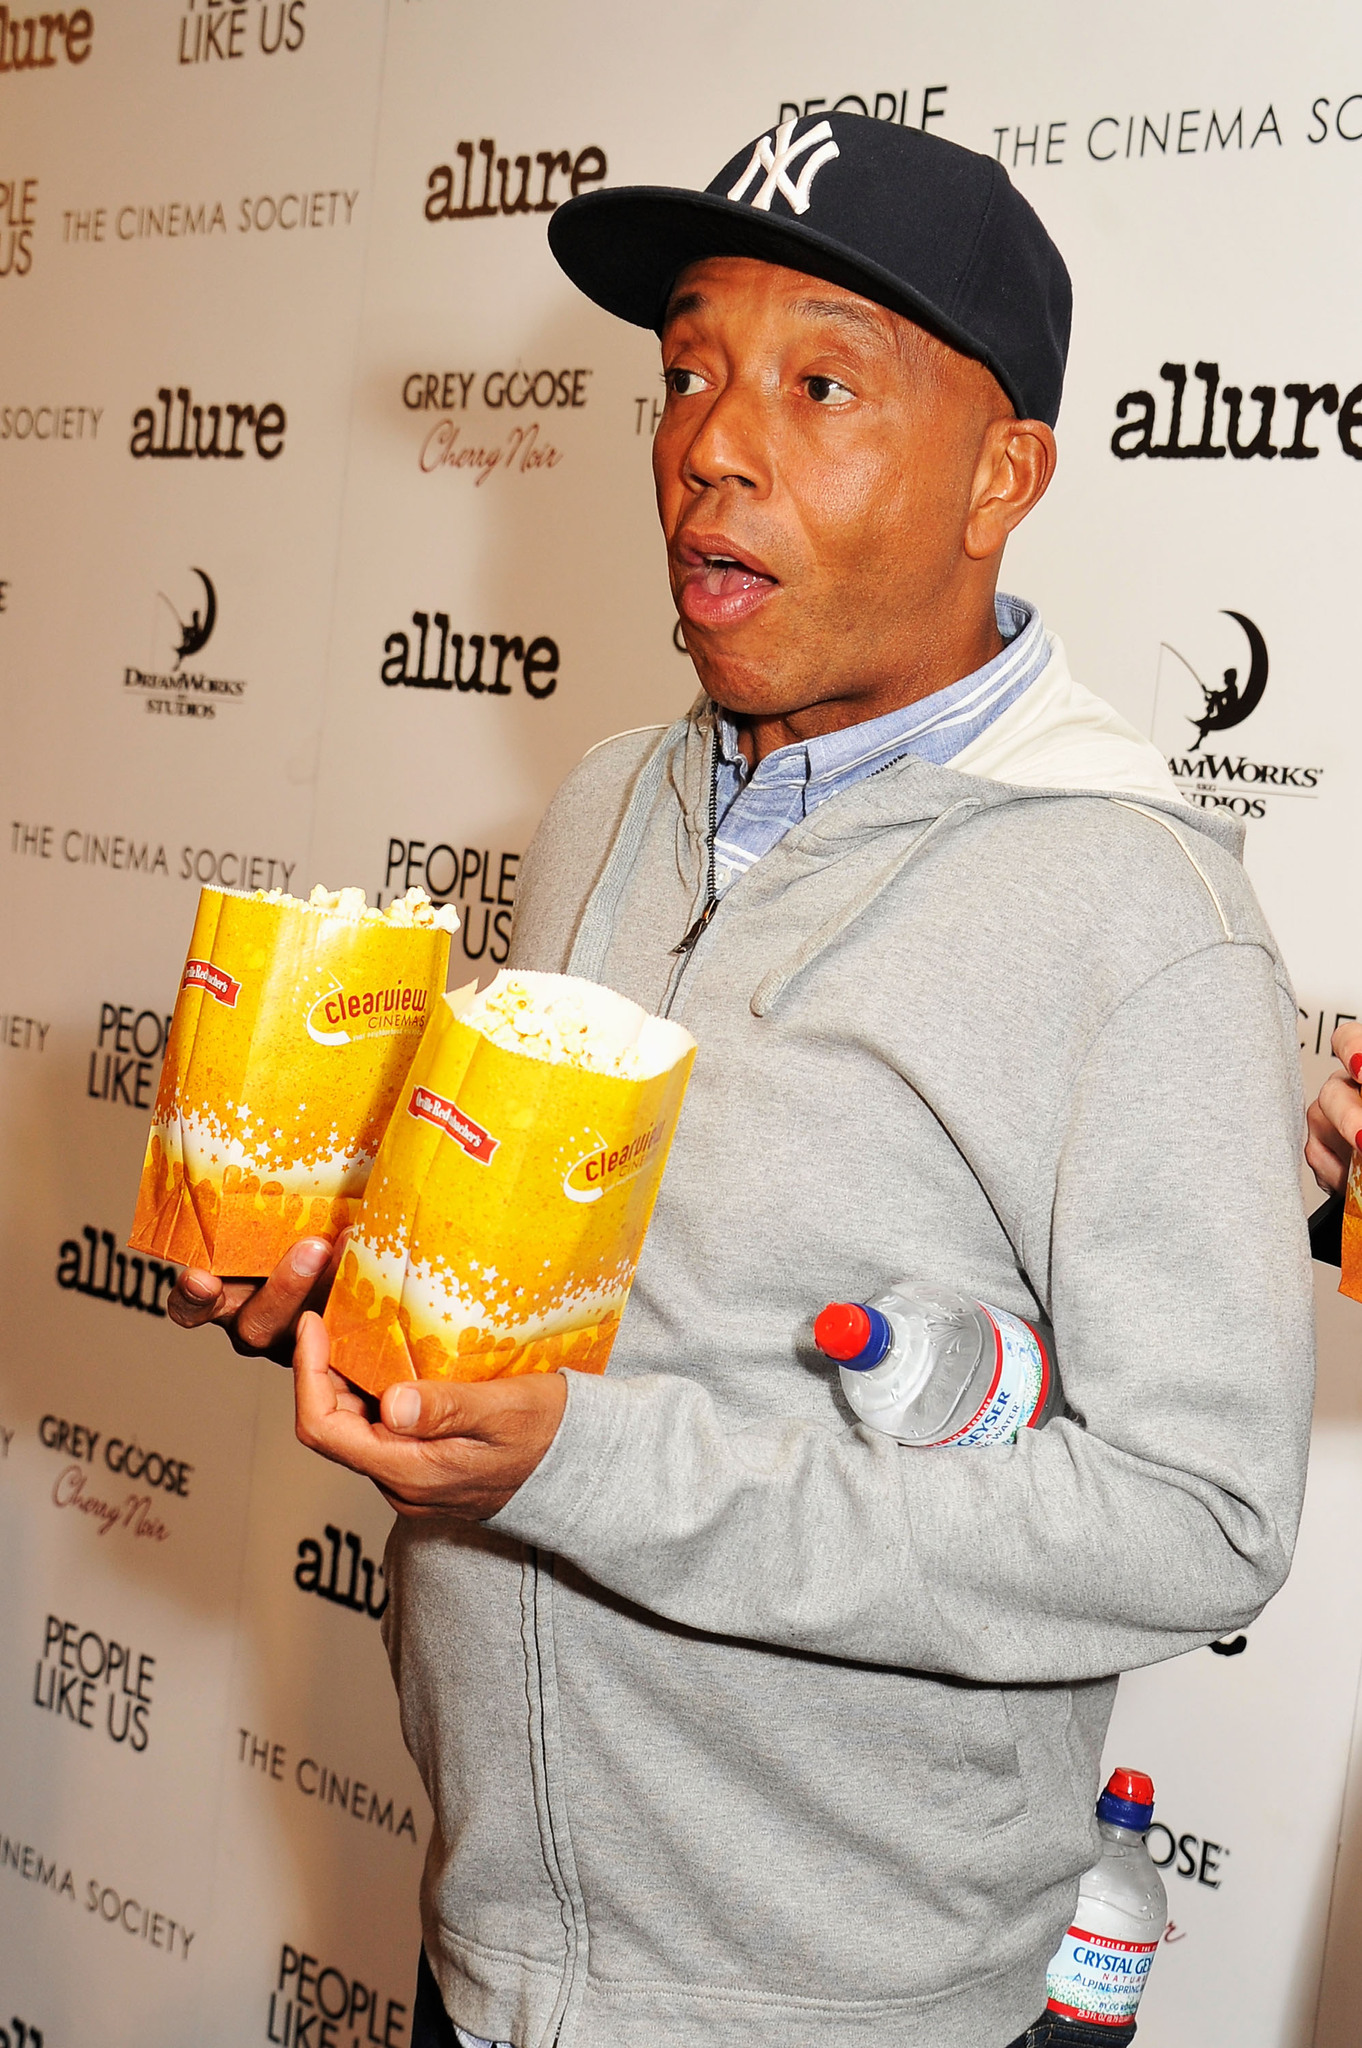 Russell Simmons at an event for People Like Us (2012)